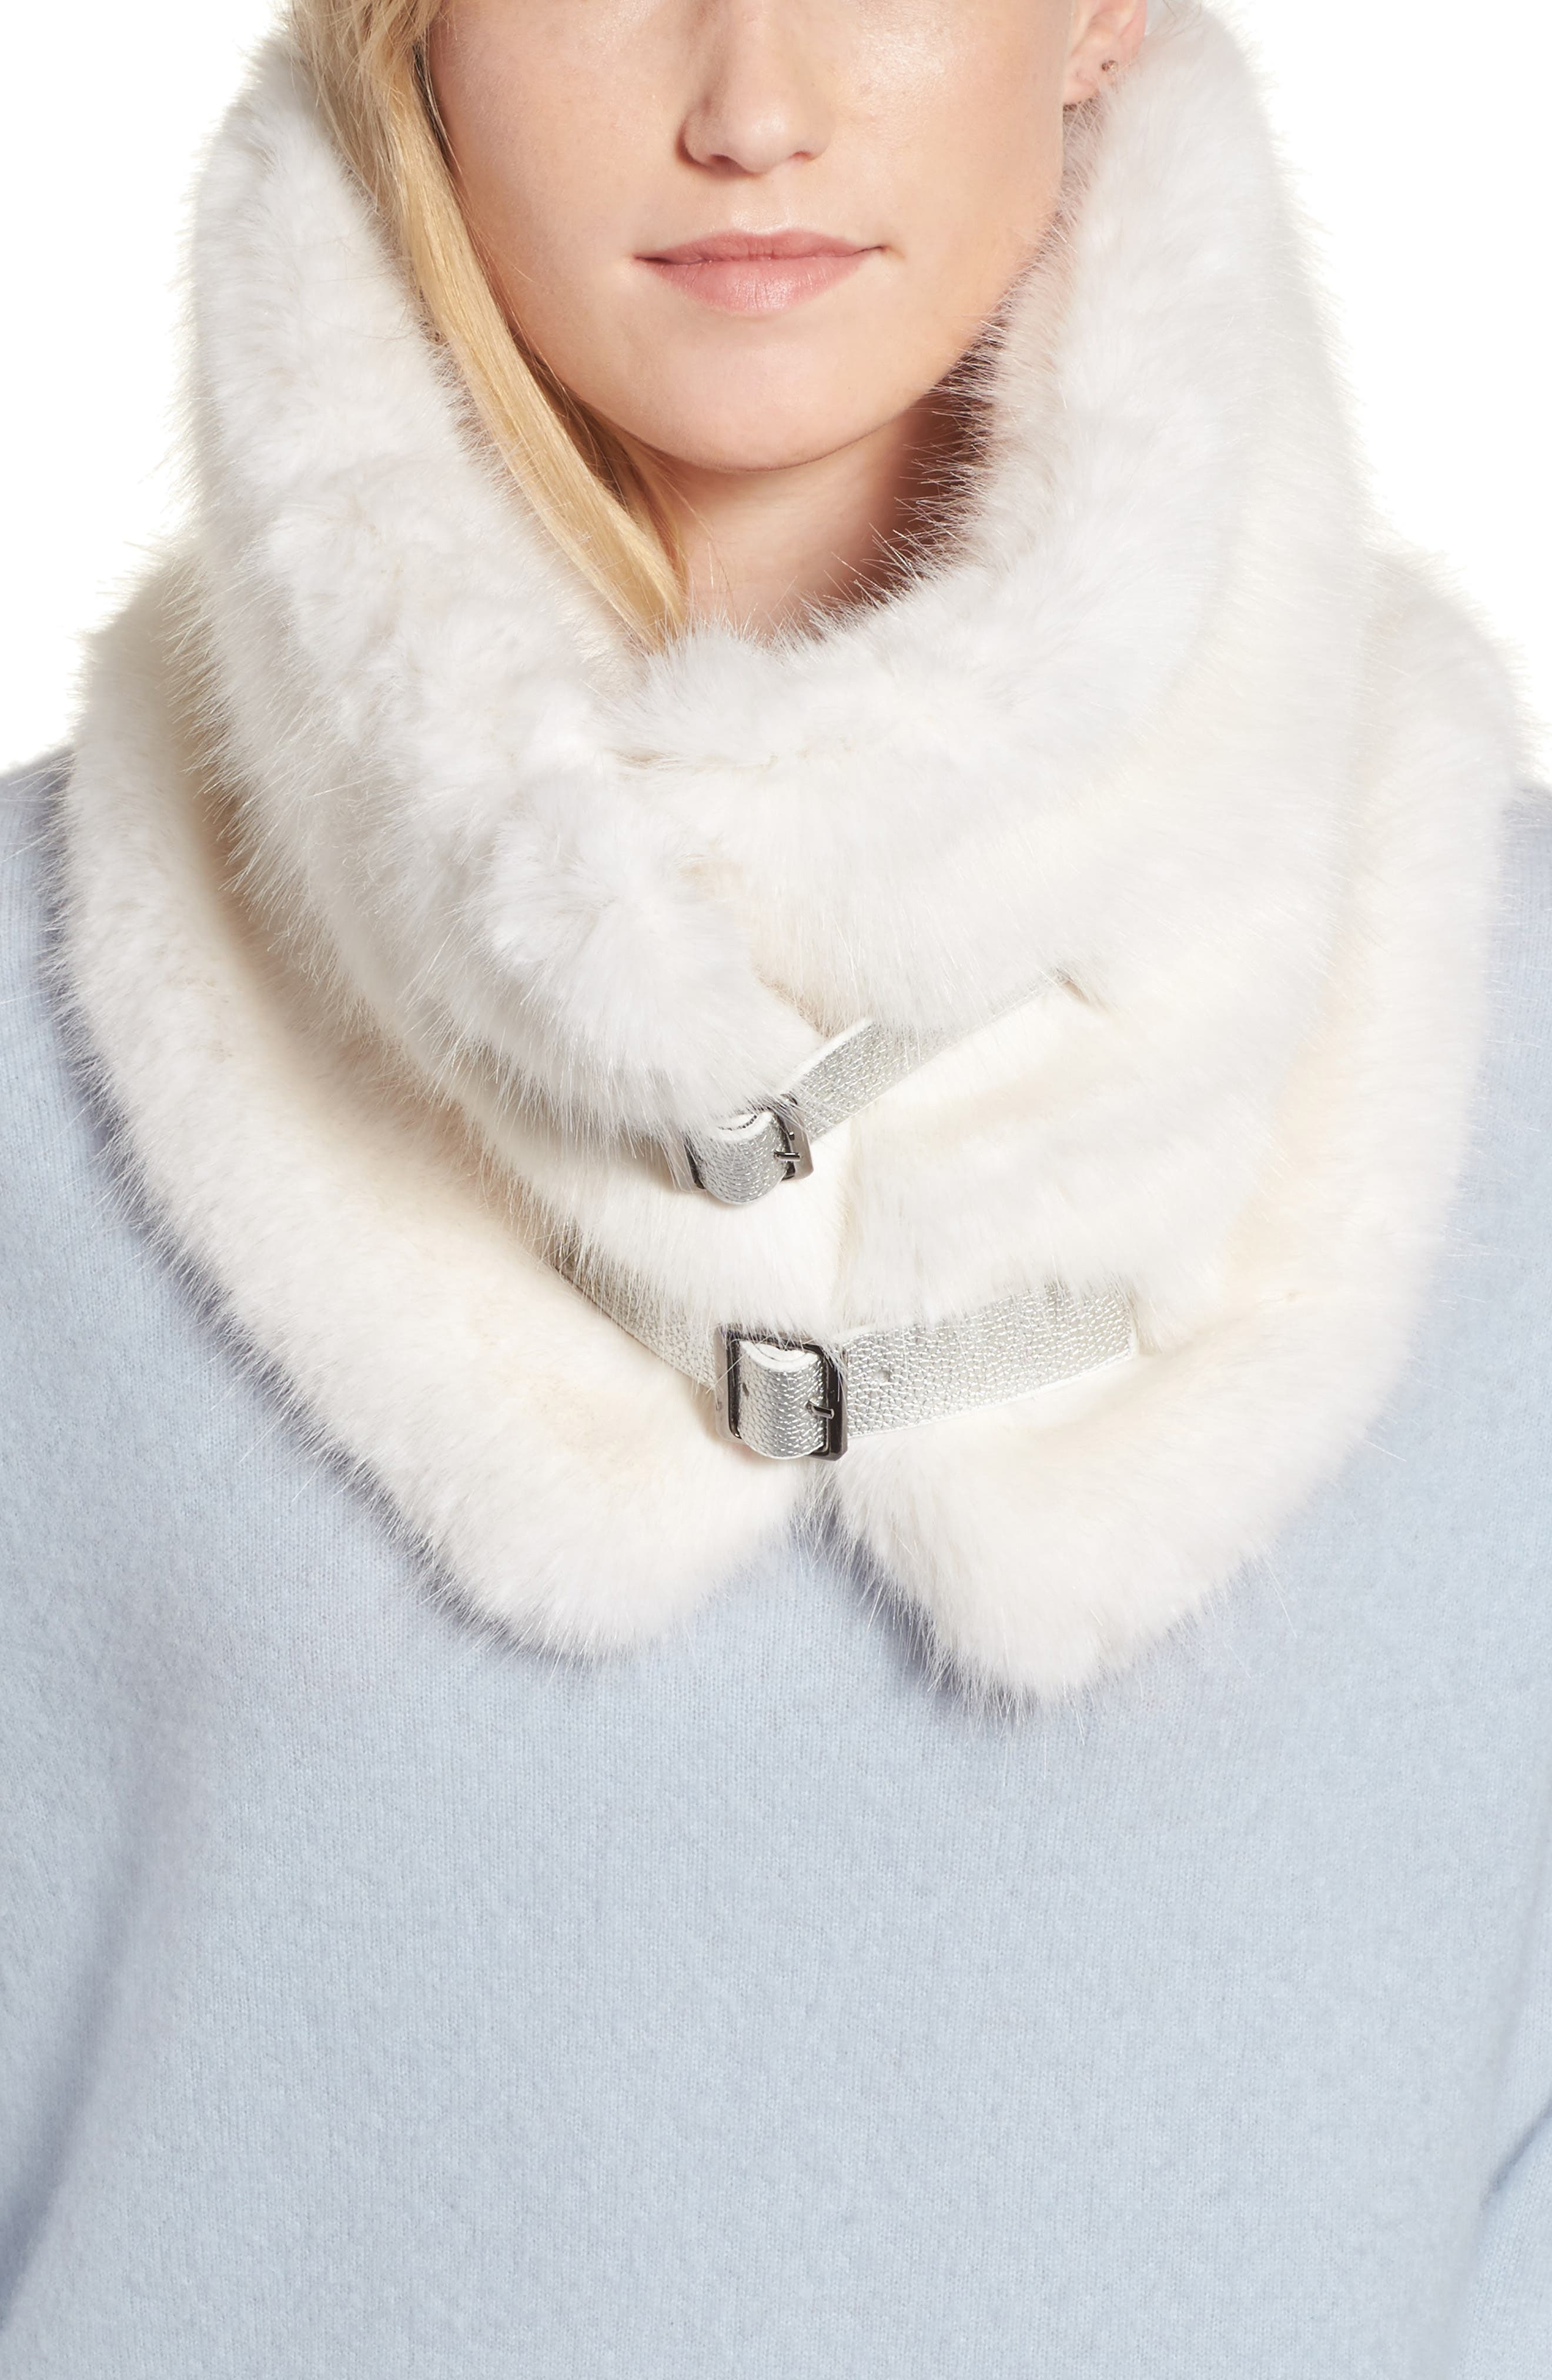 Buckled Faux Fur Cowl Scarf,                             Main thumbnail 1, color,                             White Mink